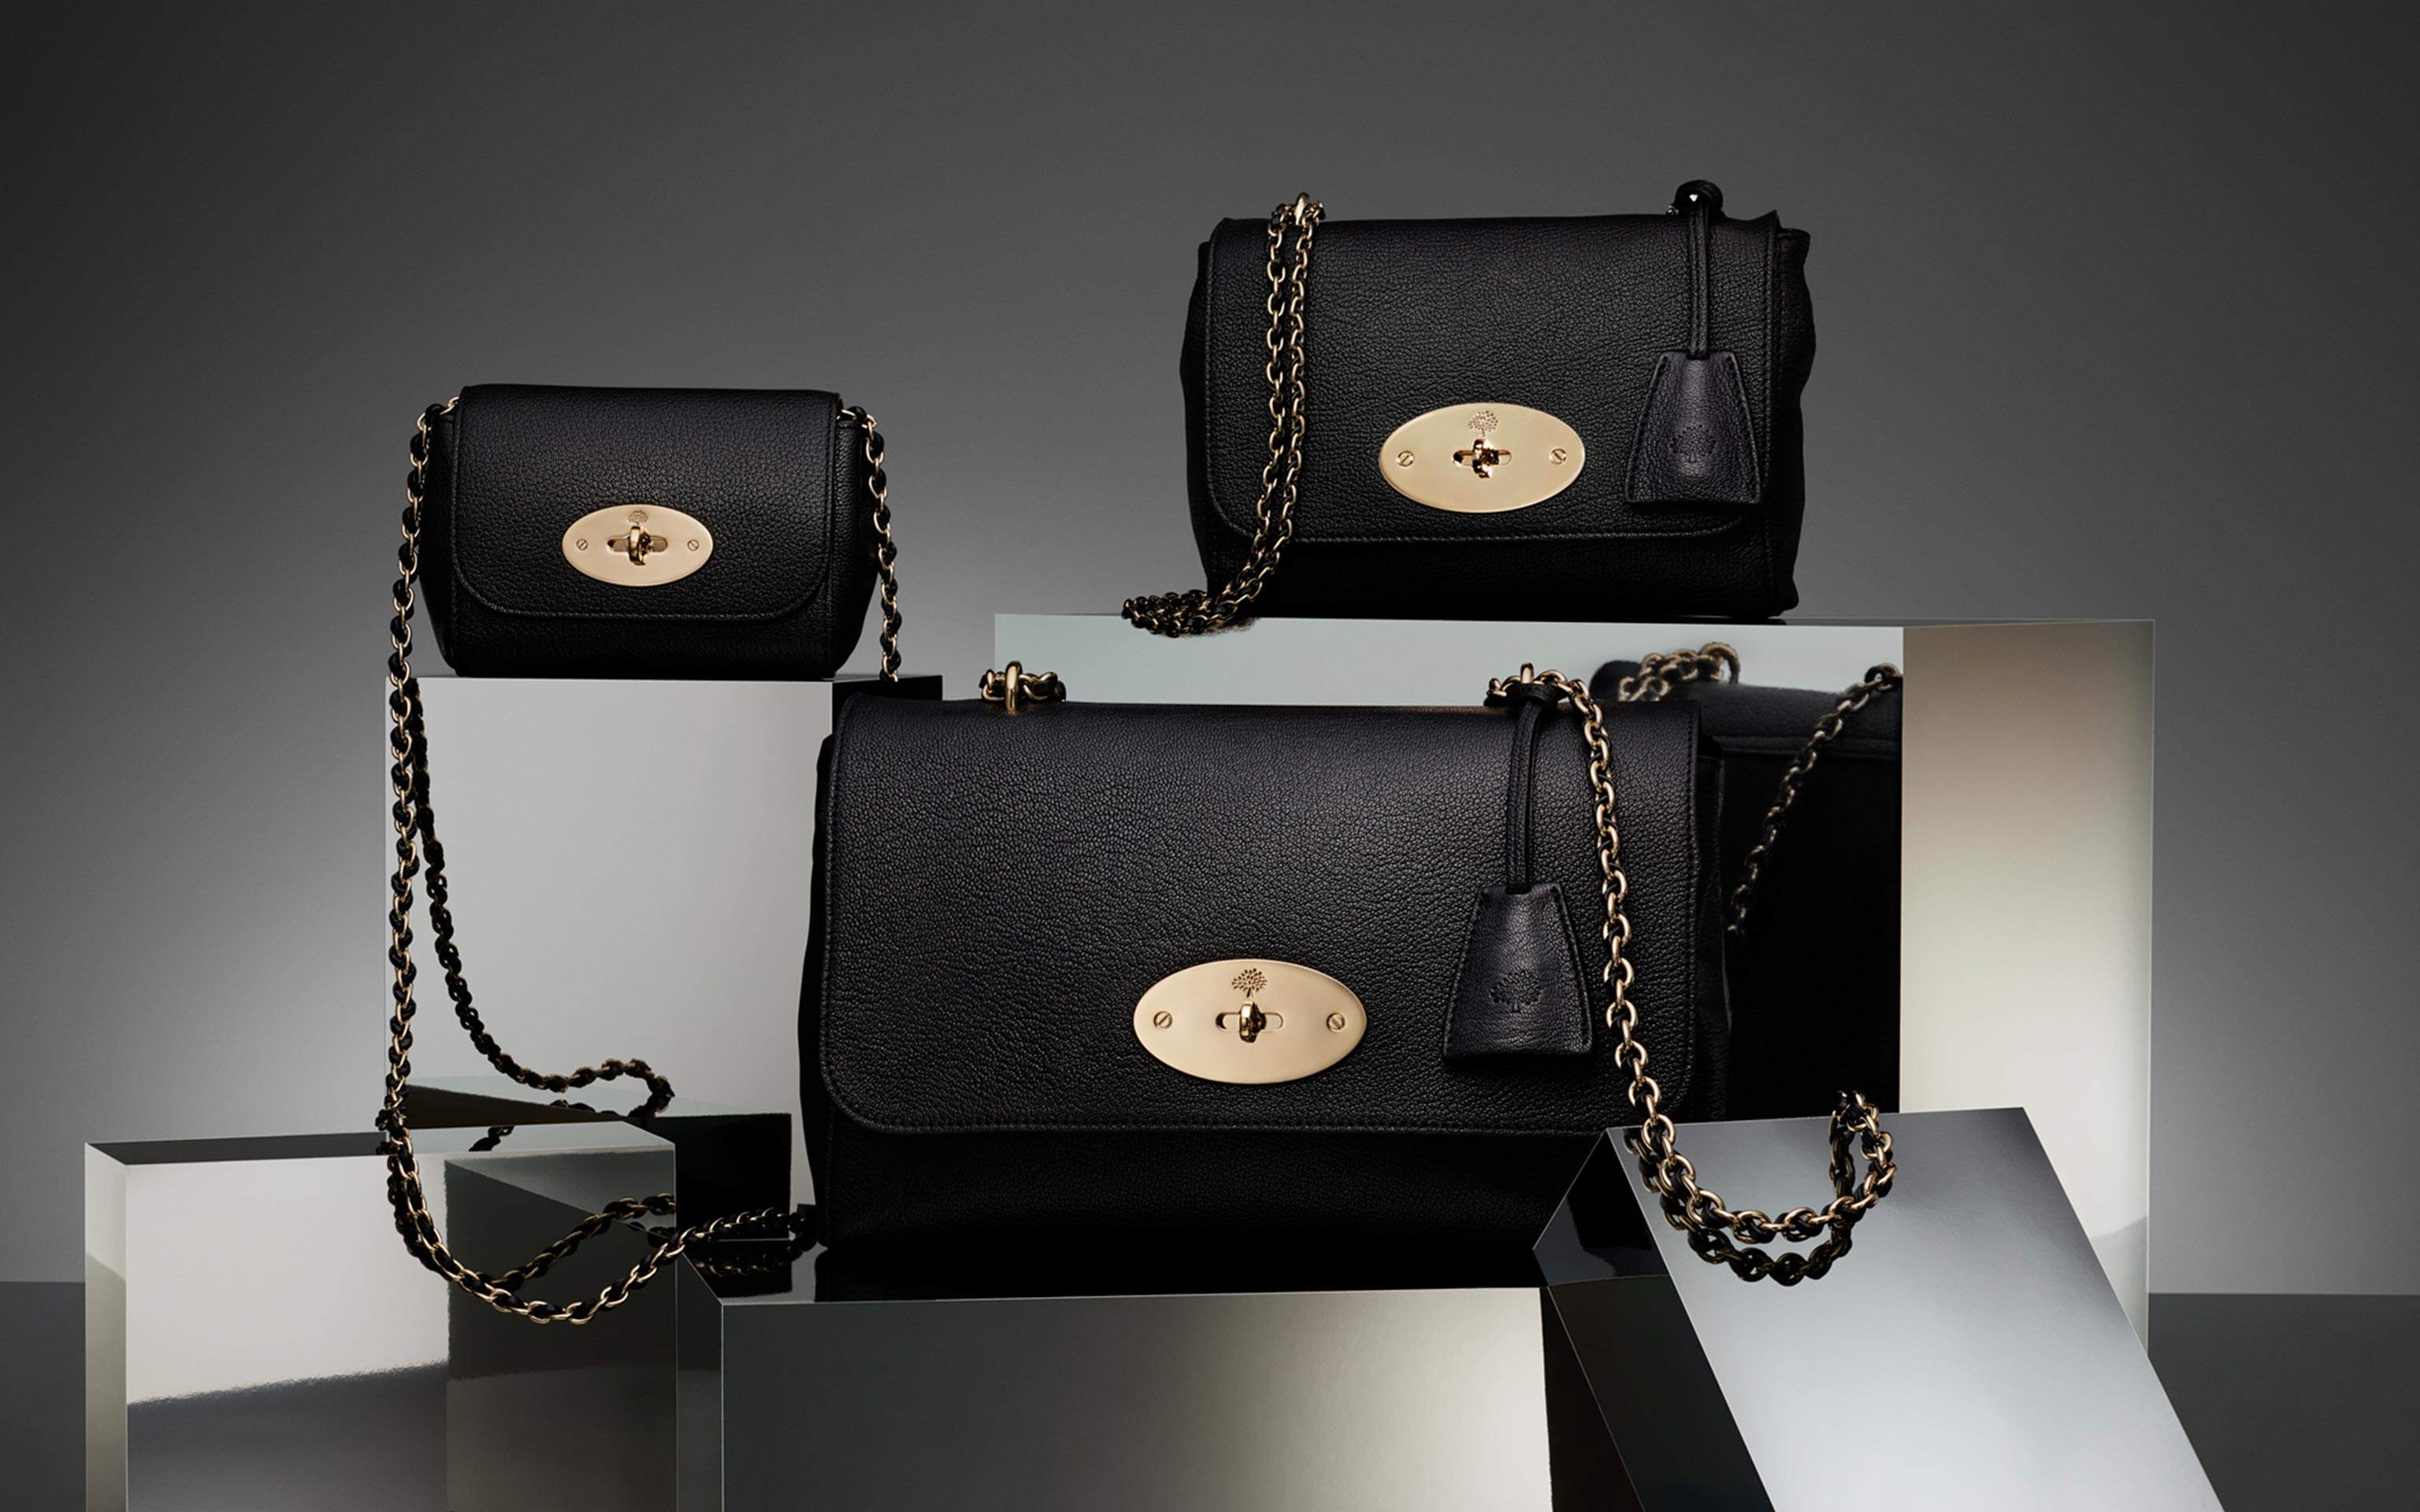 three mulberry black leather bags on display